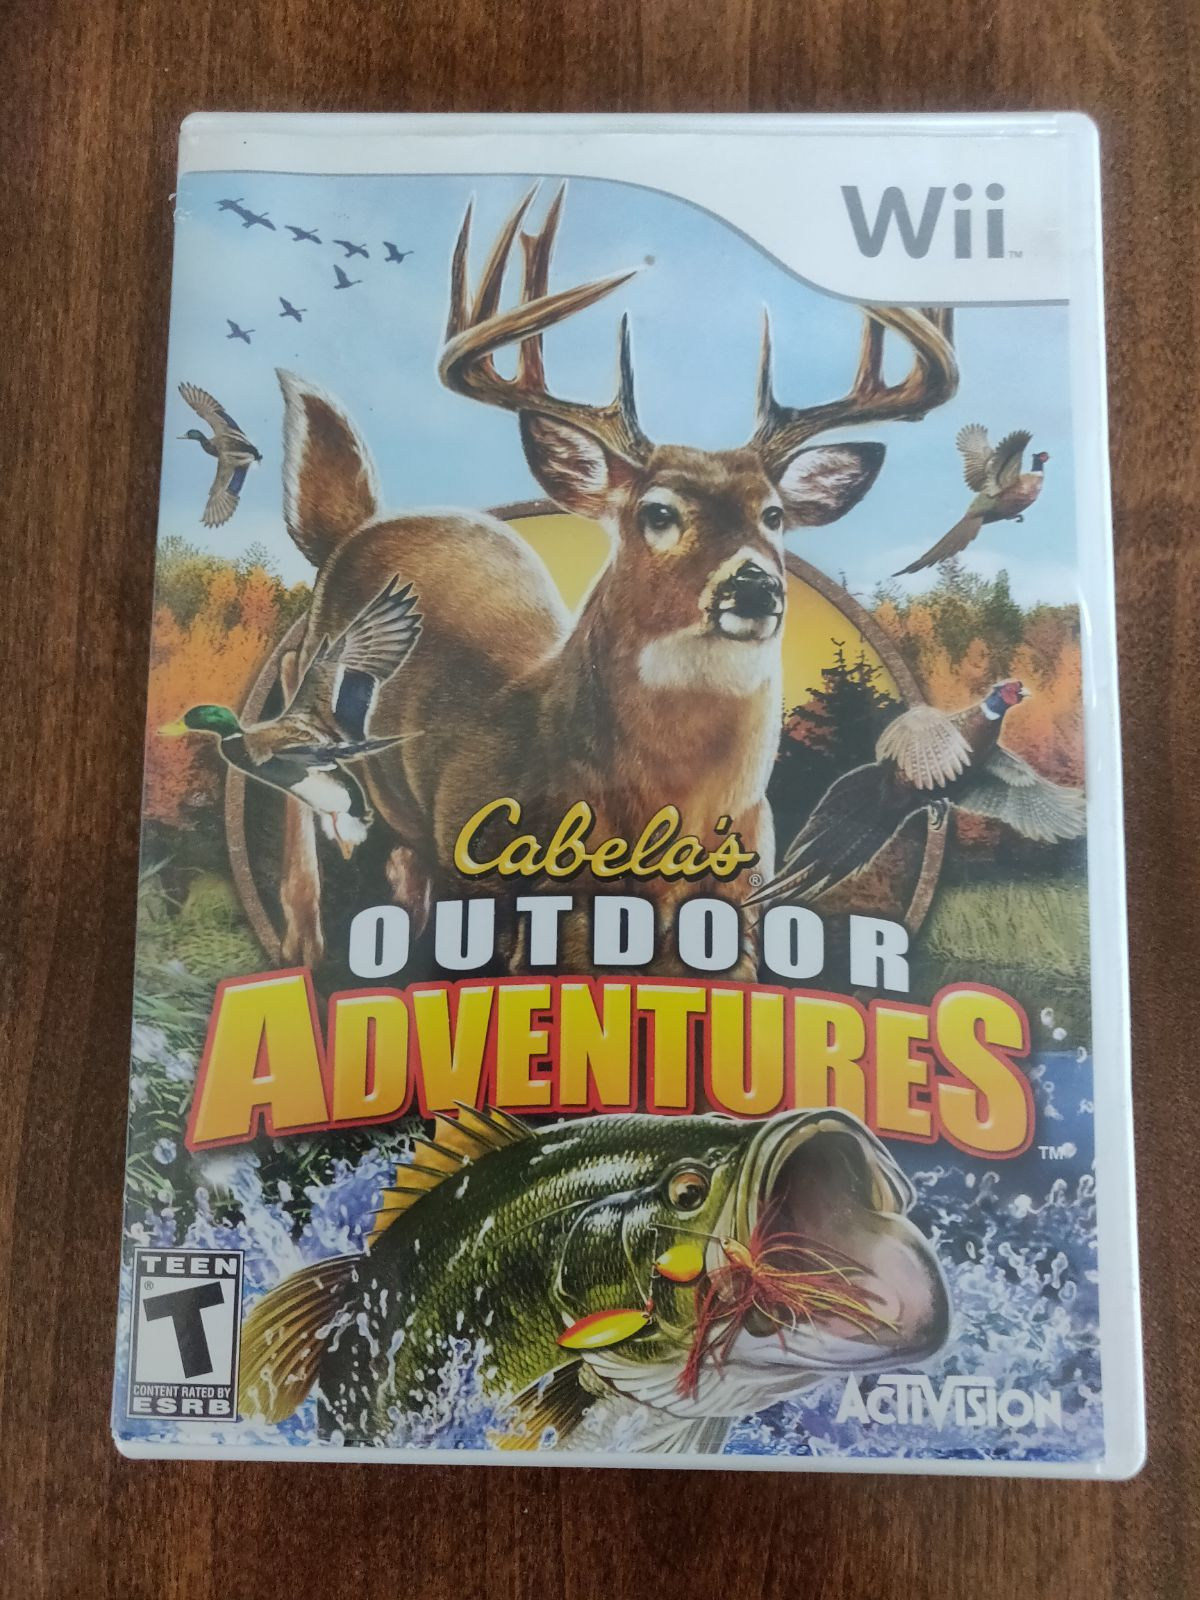 Cabelas outdoor adventures for the wii wii video games